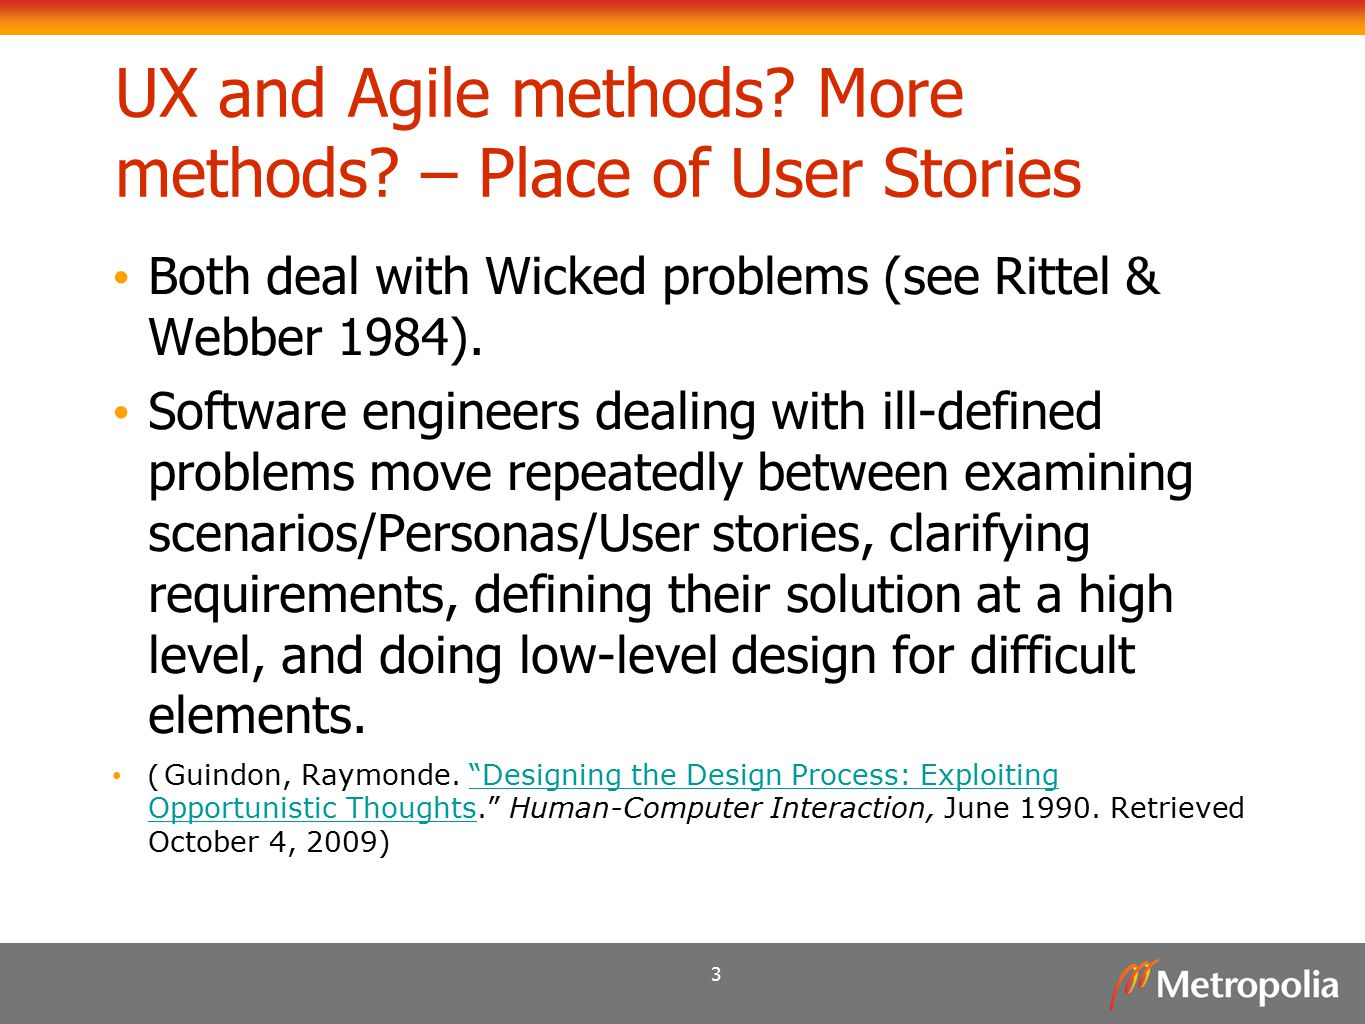 3 UX and Agile methods? More methods? – Place of User Stories Both deal with Wicked problems (see Rittel & Webber 1984). Software engineers dealing wi